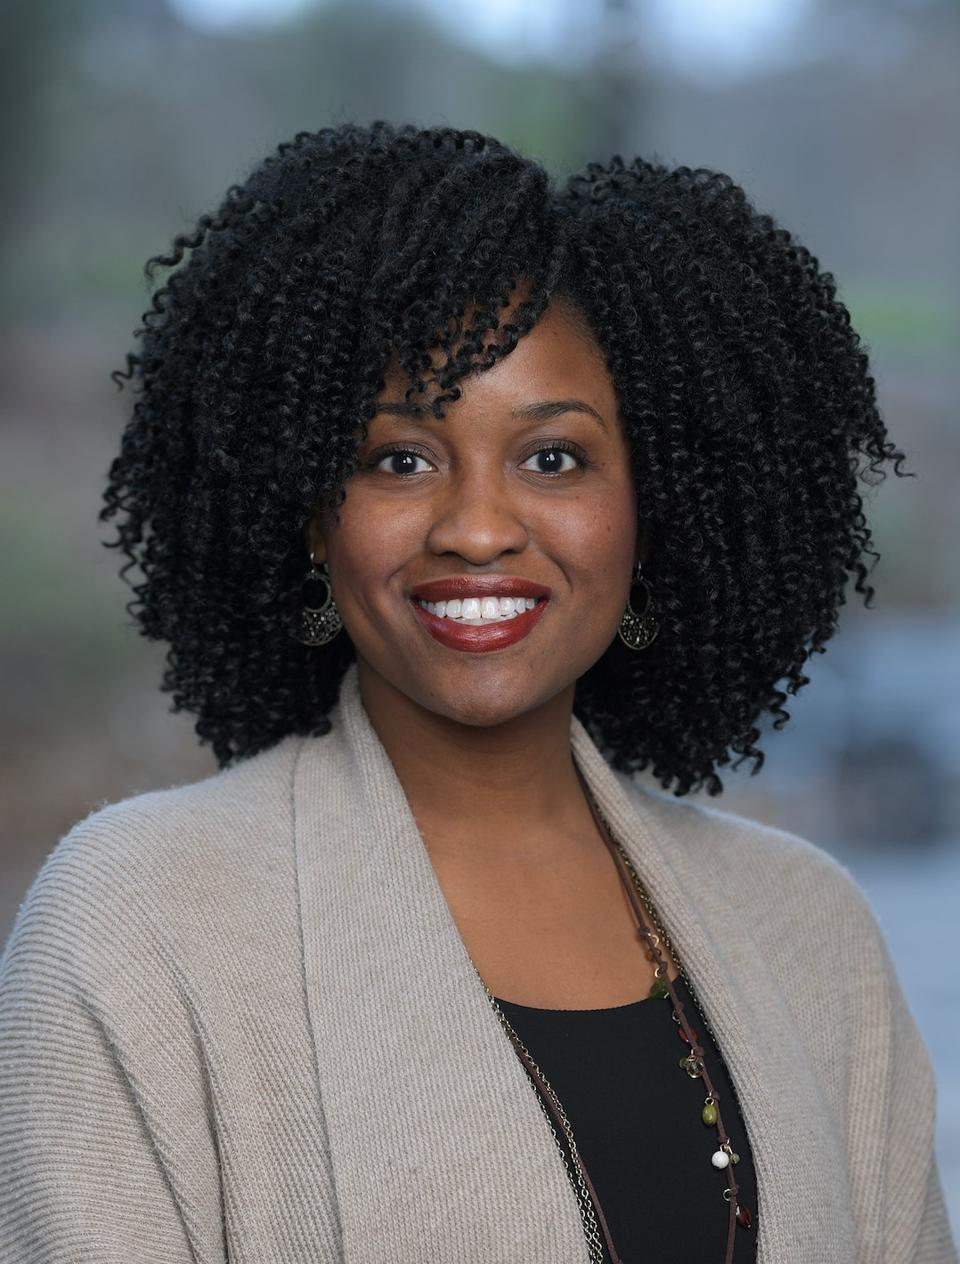 Khalilah Cooper, Chick-fil-A's director service and hospitality group